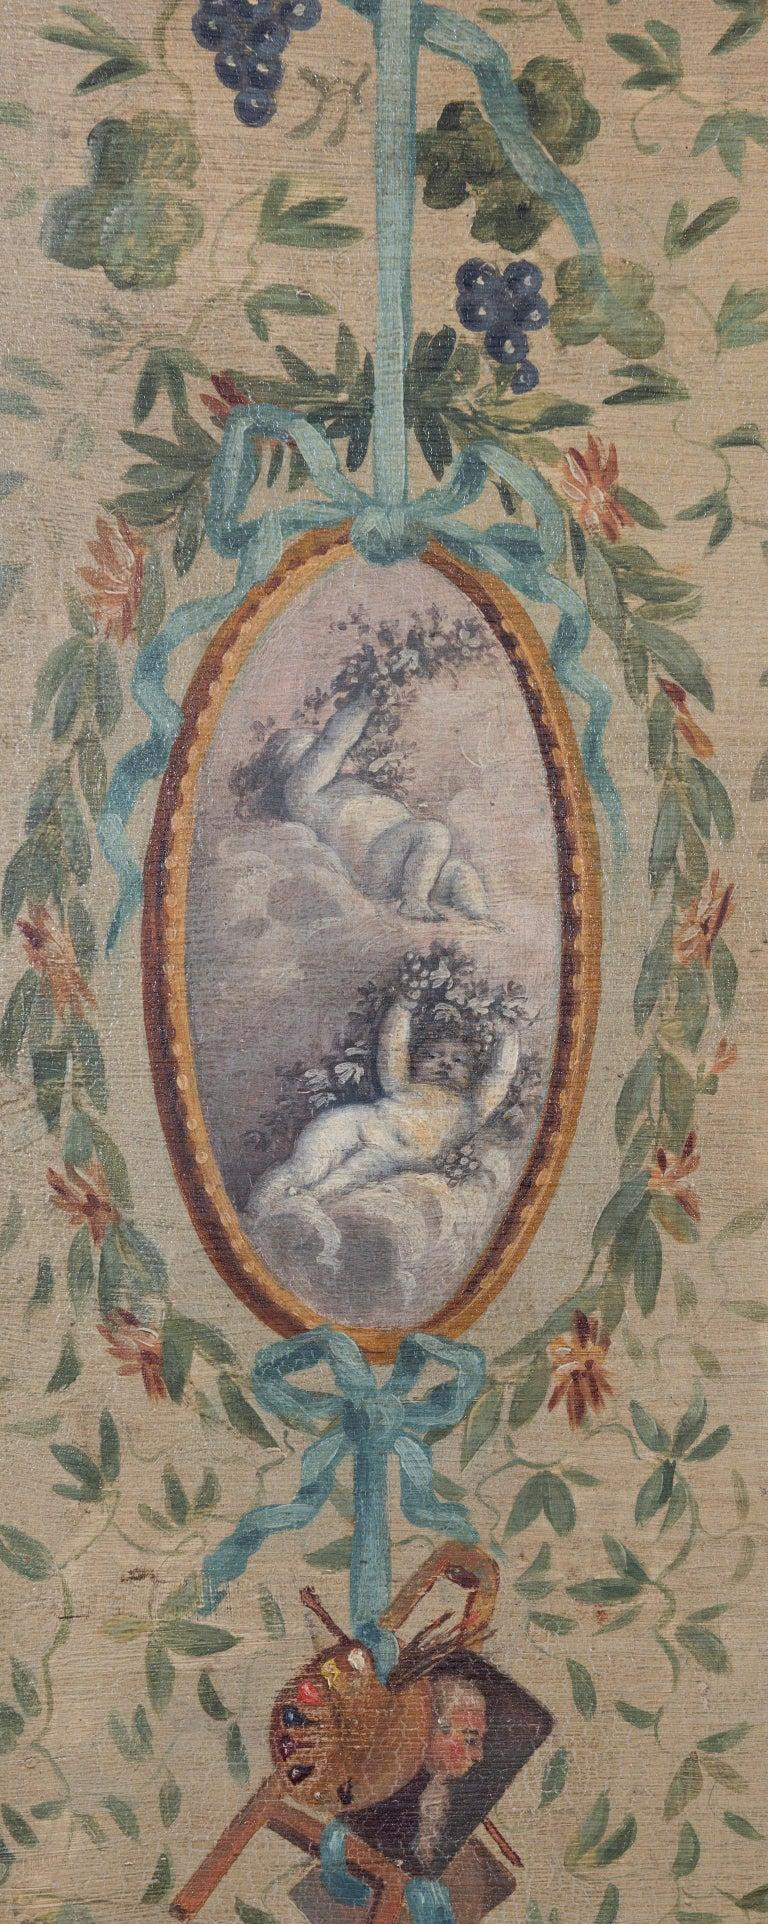 Each panel painted with classical oval shaped medallions depicting putti, surrounded by floral wreaths, musical trophies, foliage and ribbons on a pale olive green ground.